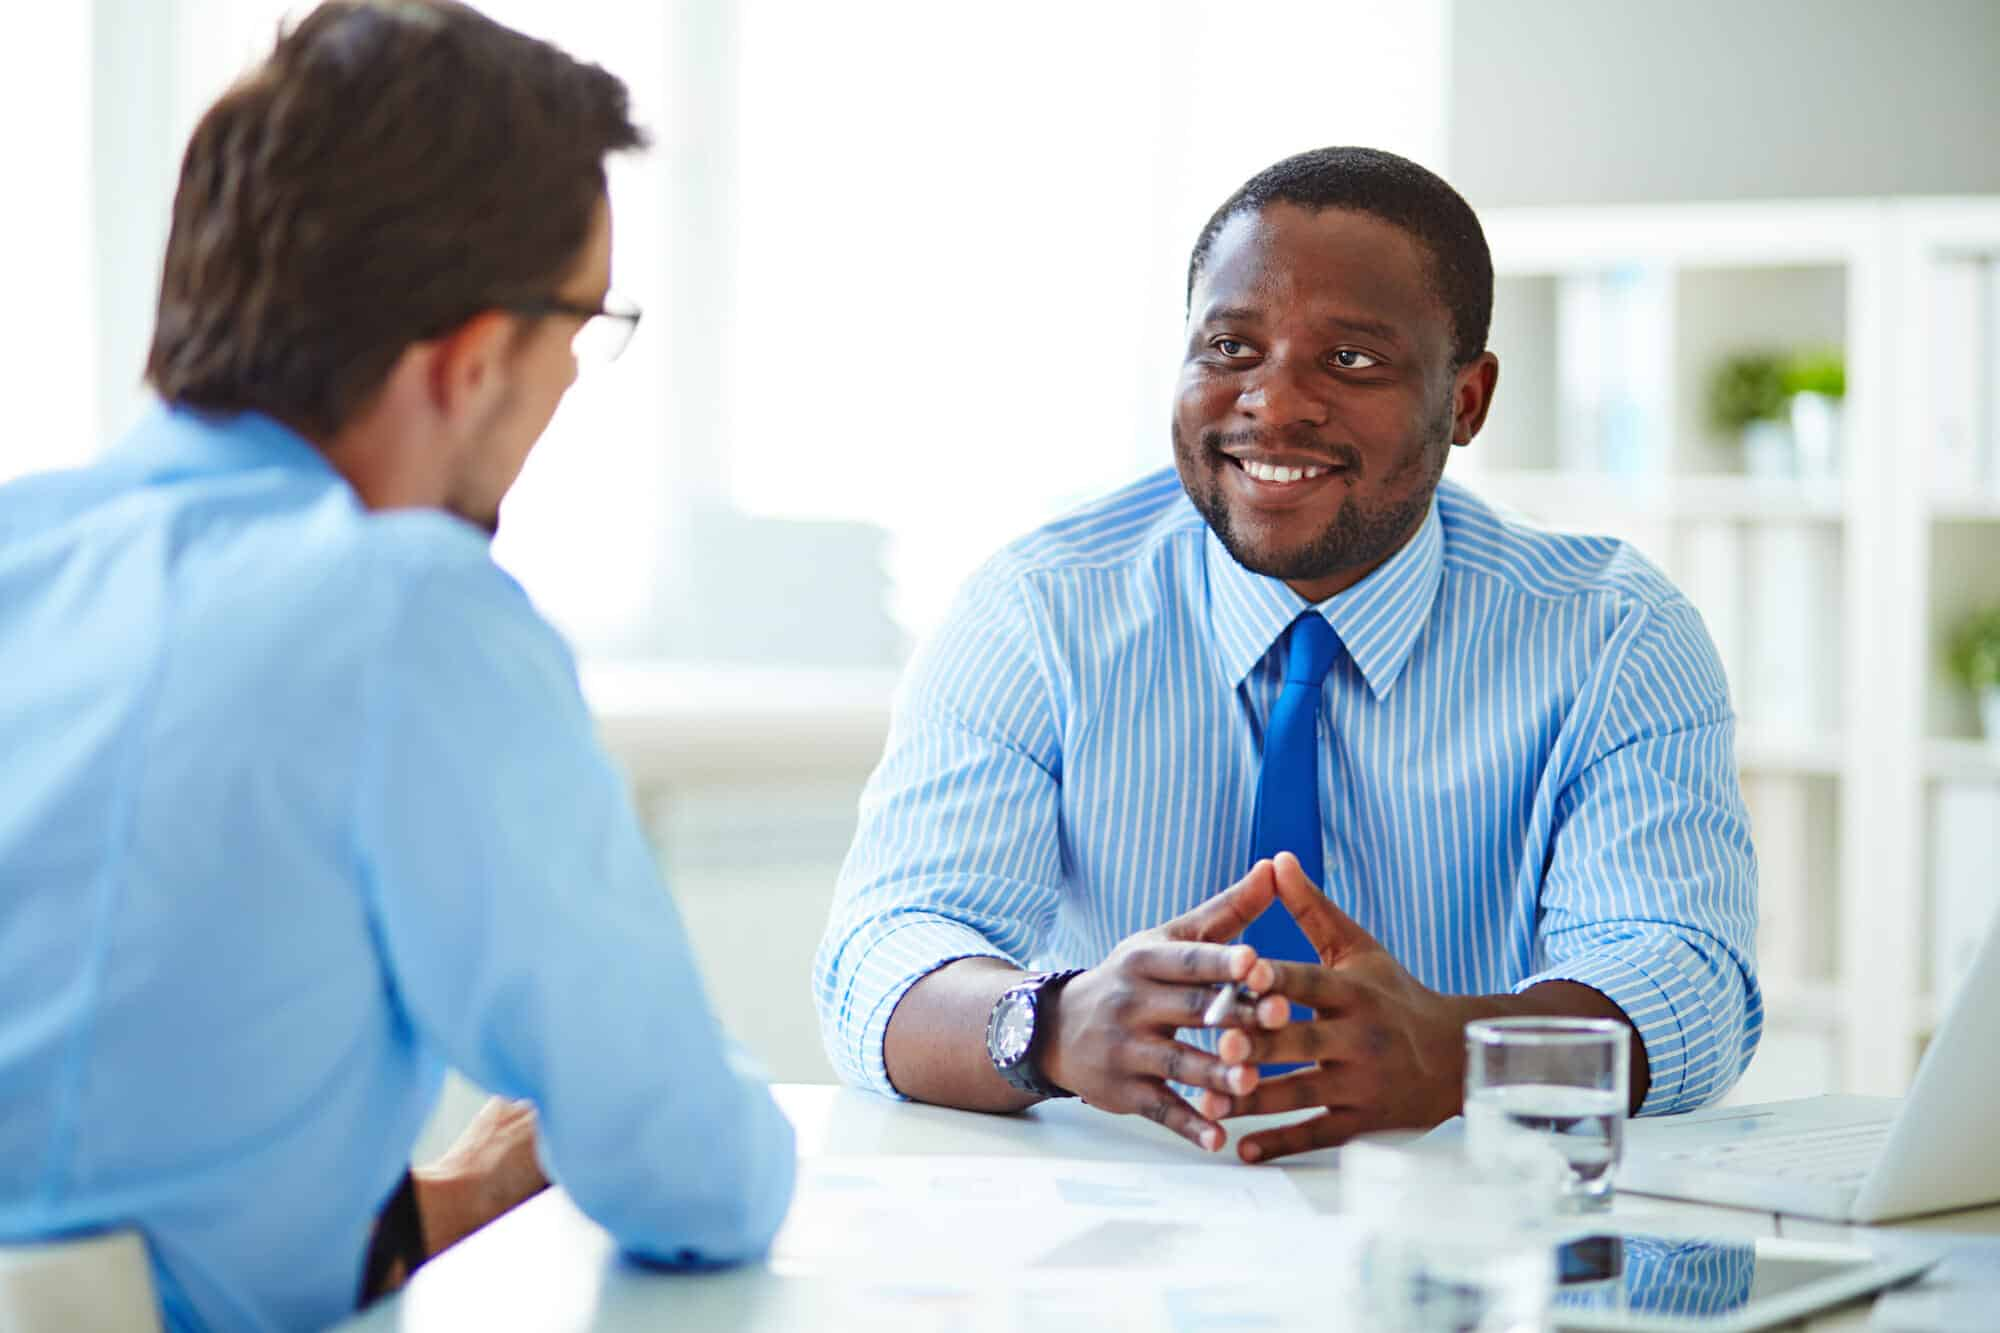 21 Tips For Effective Interview Preparation, Participation, & Follow-Up